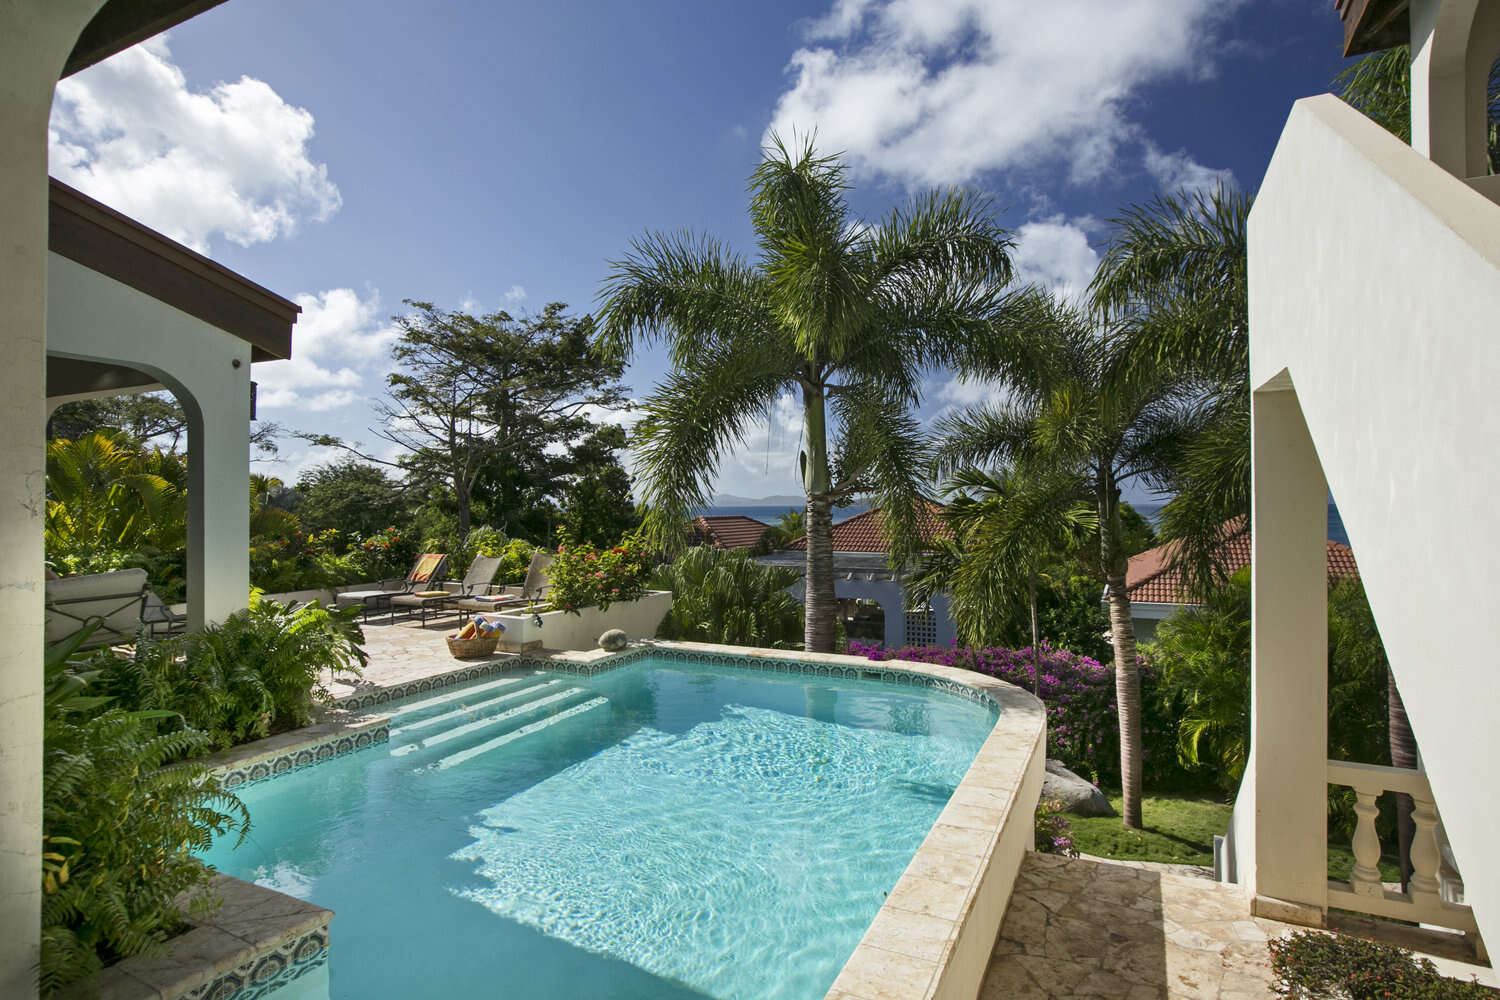 Luxury villa rentals caribbean - British virgin islands - Virgin gorda - Mahoe bay - Bellamare - Image 1/19